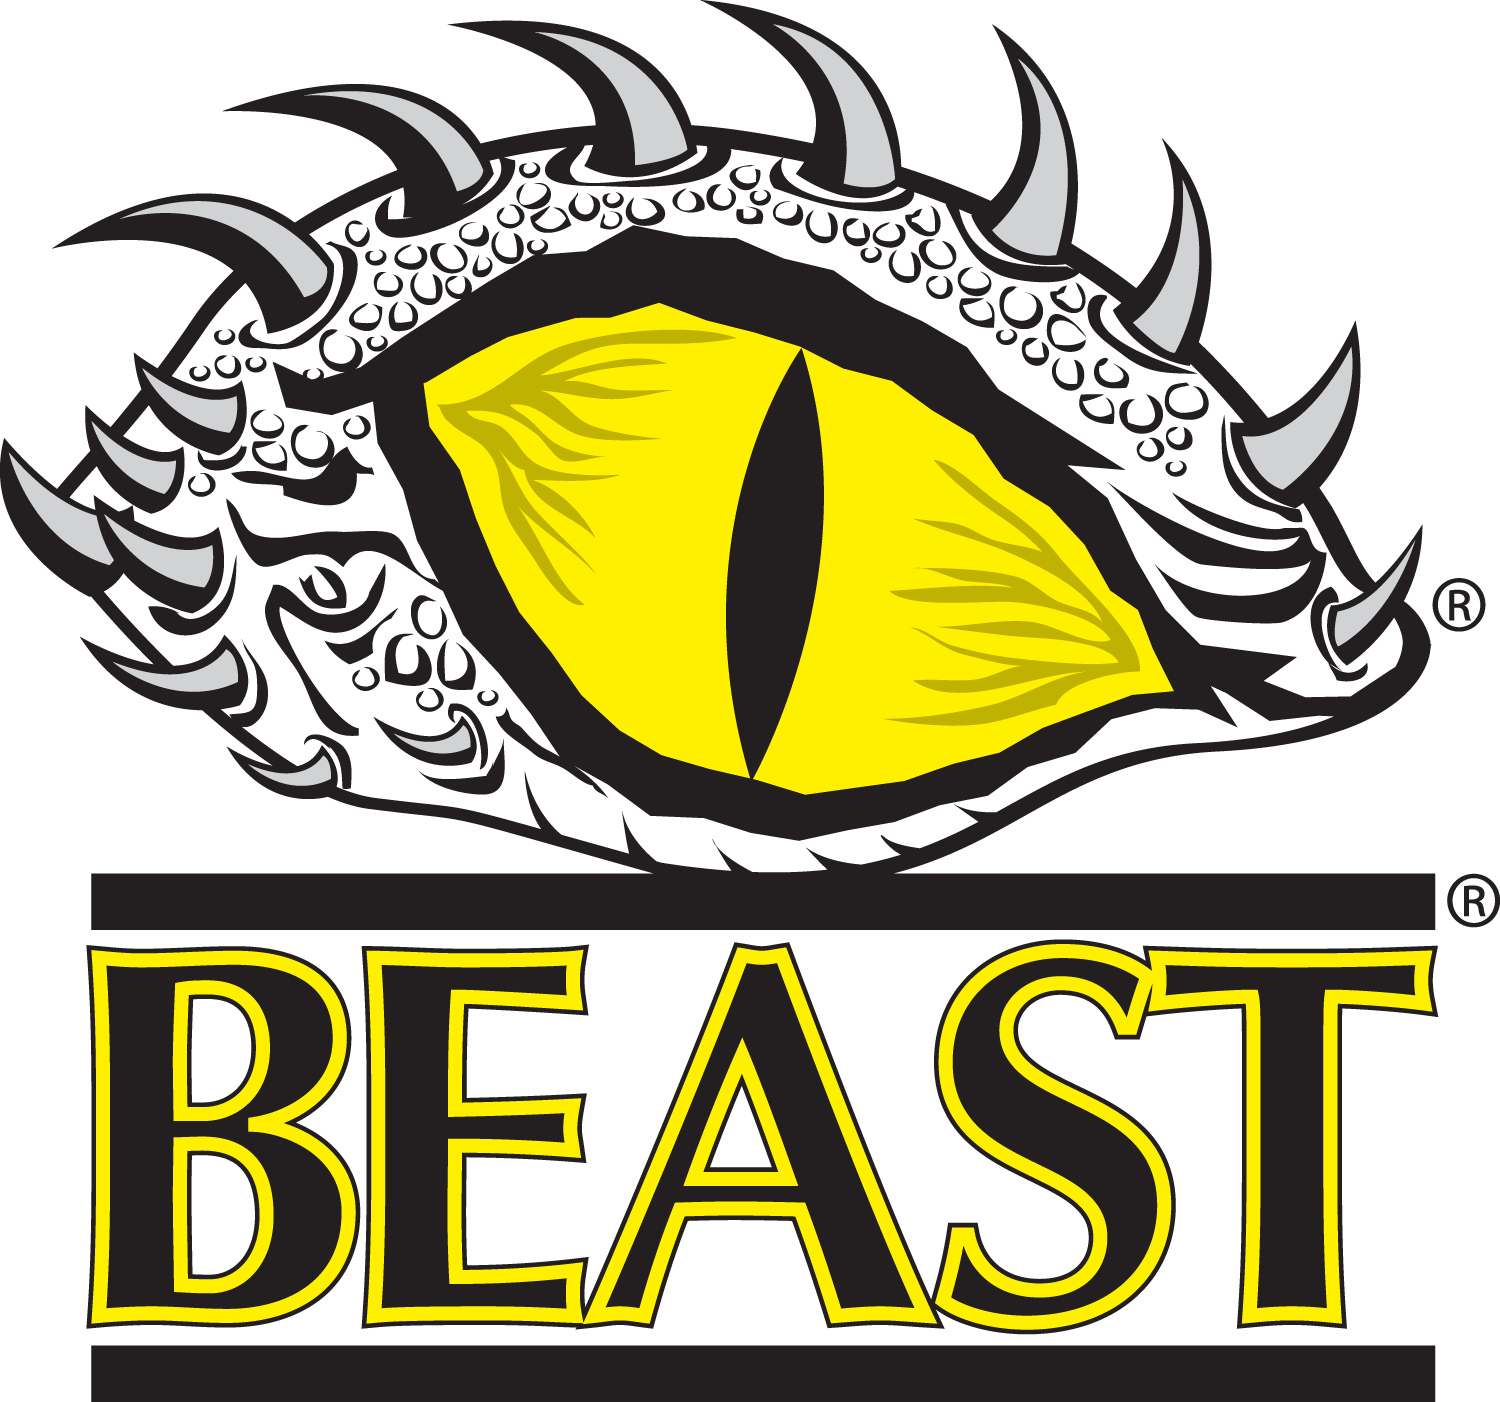 beast-transparent-imag-1